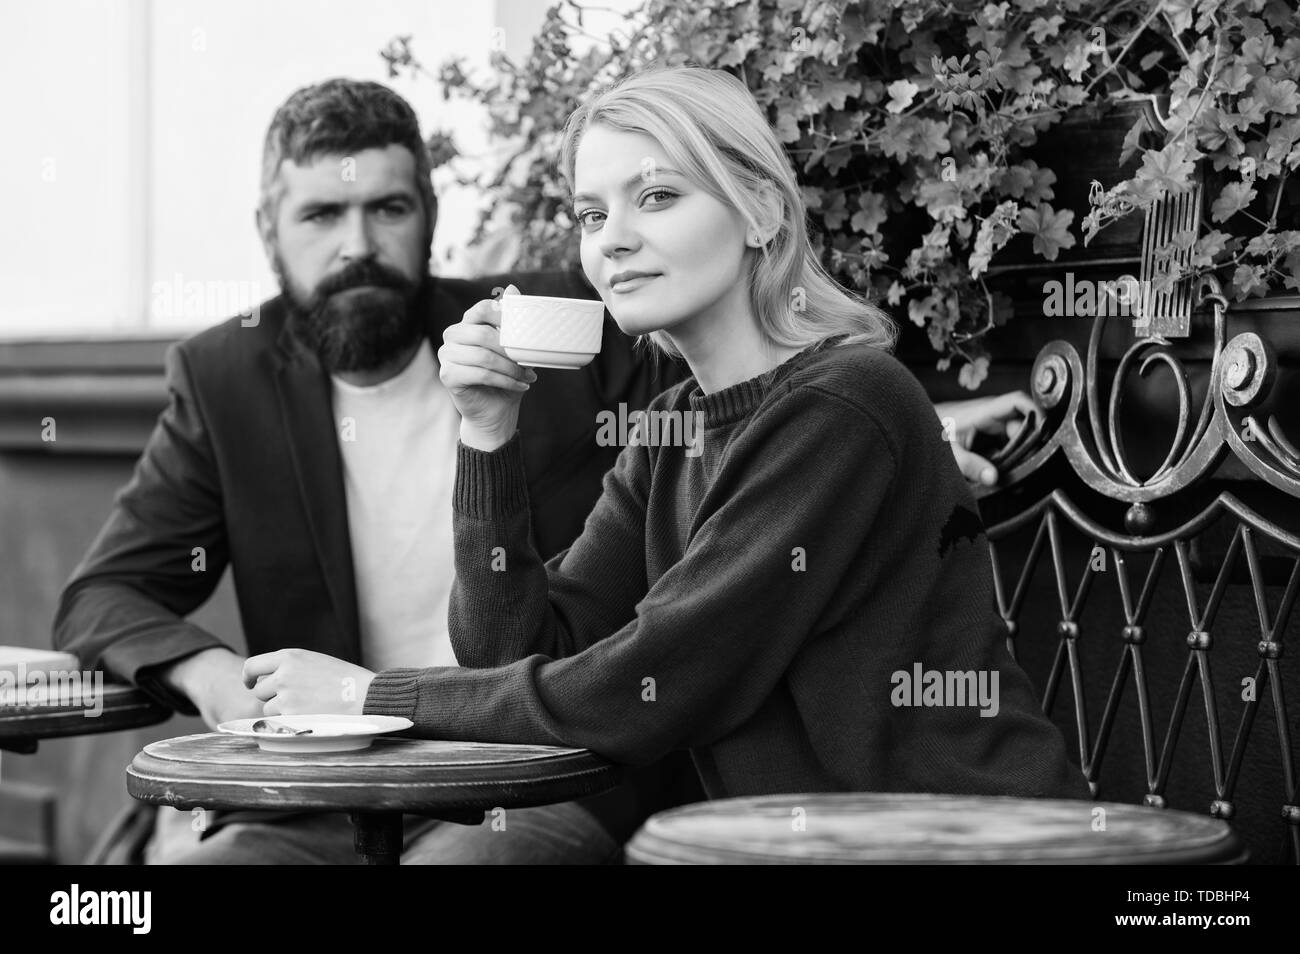 Couple terrace drinking coffee. Casual meet acquaintance public place. Meeting people first date. Strangers meet become acquaintances. Apps normal way to meet and connect with other single people. - Stock Image